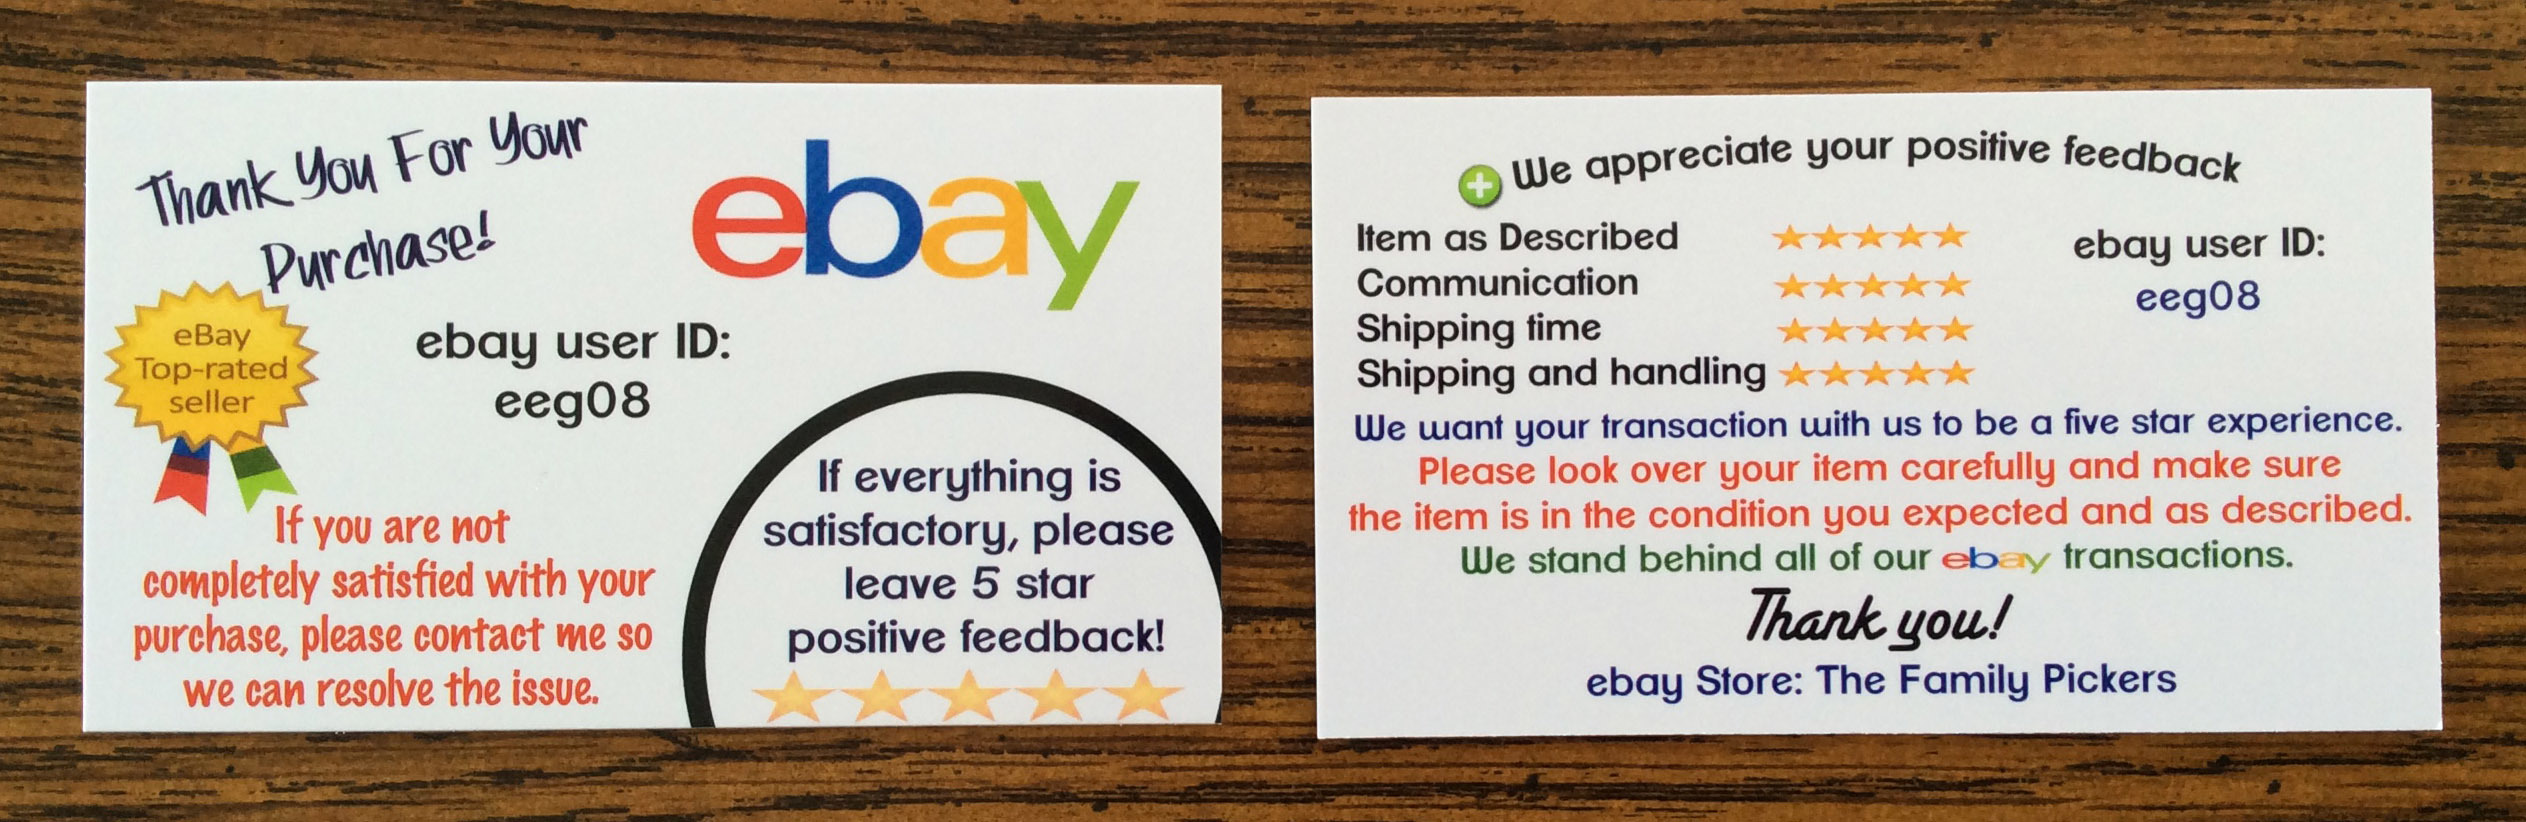 Generous ebay business cards ideas business card ideas etadamfo business cards for ebay user id sellers the family pickers reheart Image collections